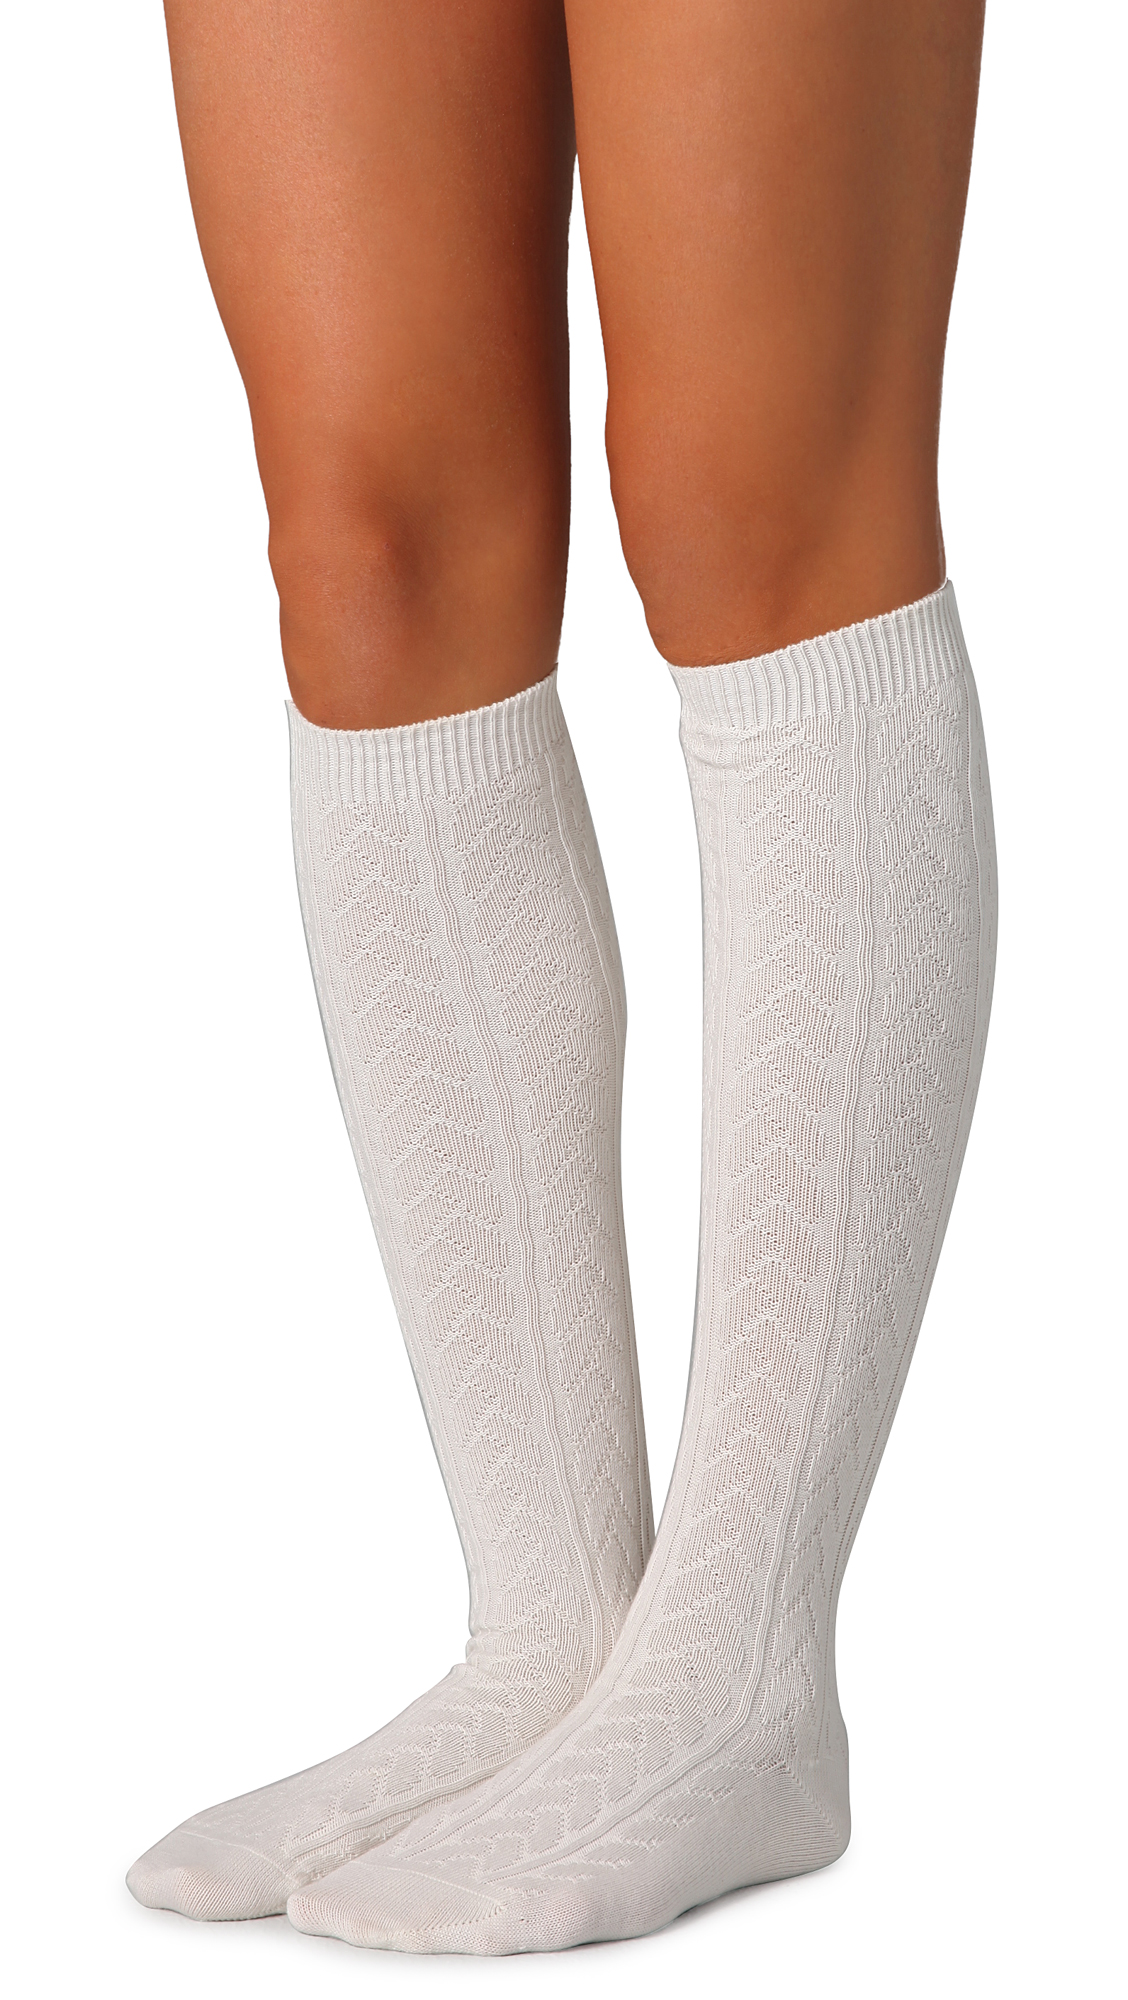 You searched for: cable knit socks! Etsy is the home to thousands of handmade, vintage, and one-of-a-kind products and gifts related to your search. No matter what you're looking for or where you are in the world, our global marketplace of sellers can help you find unique and affordable options. Let's get started!